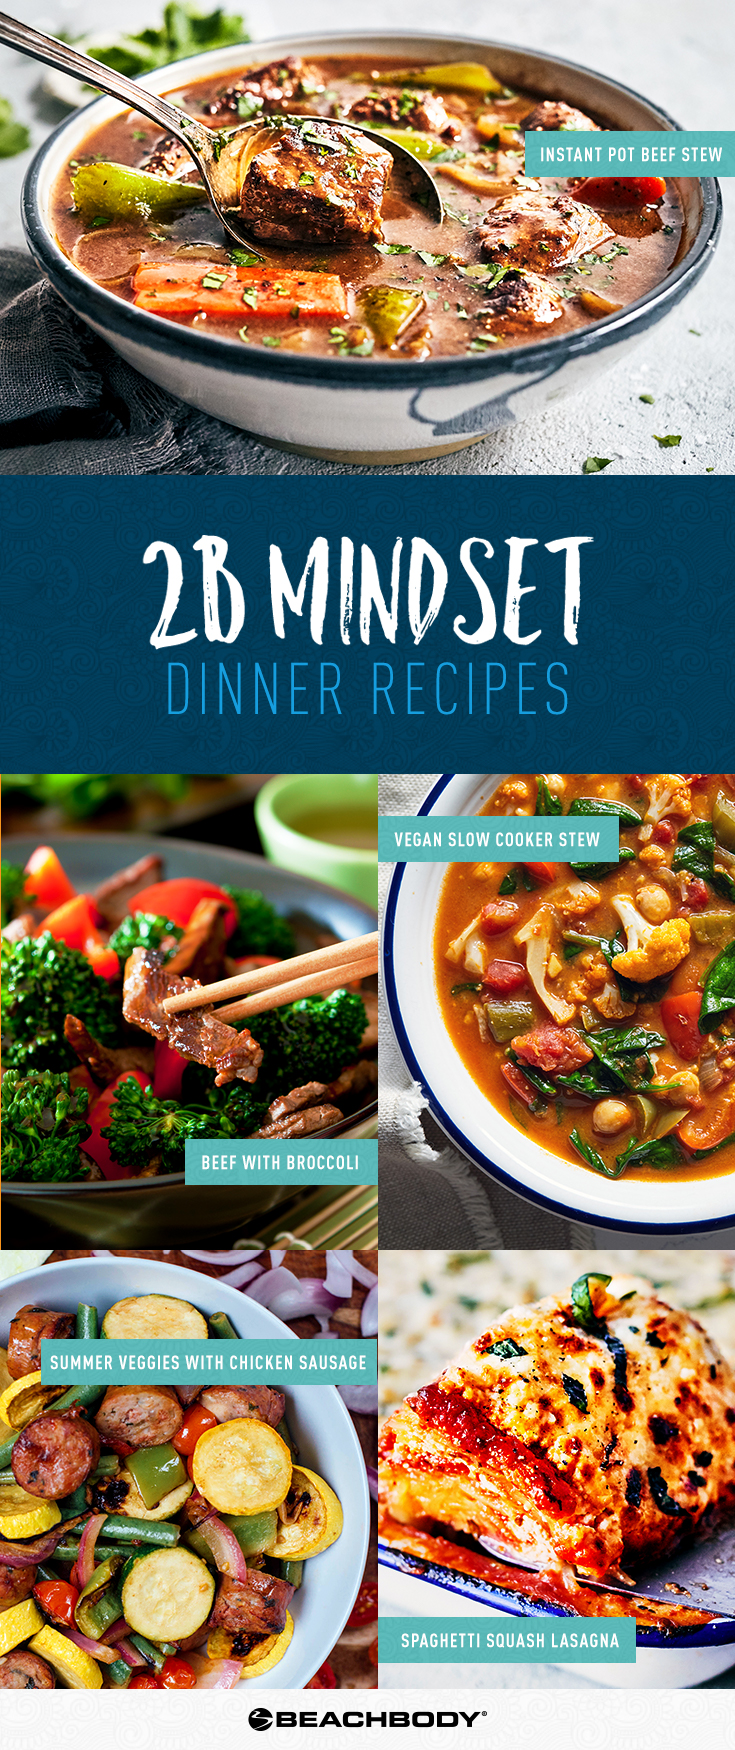 2B Mindset Dinner Recipes